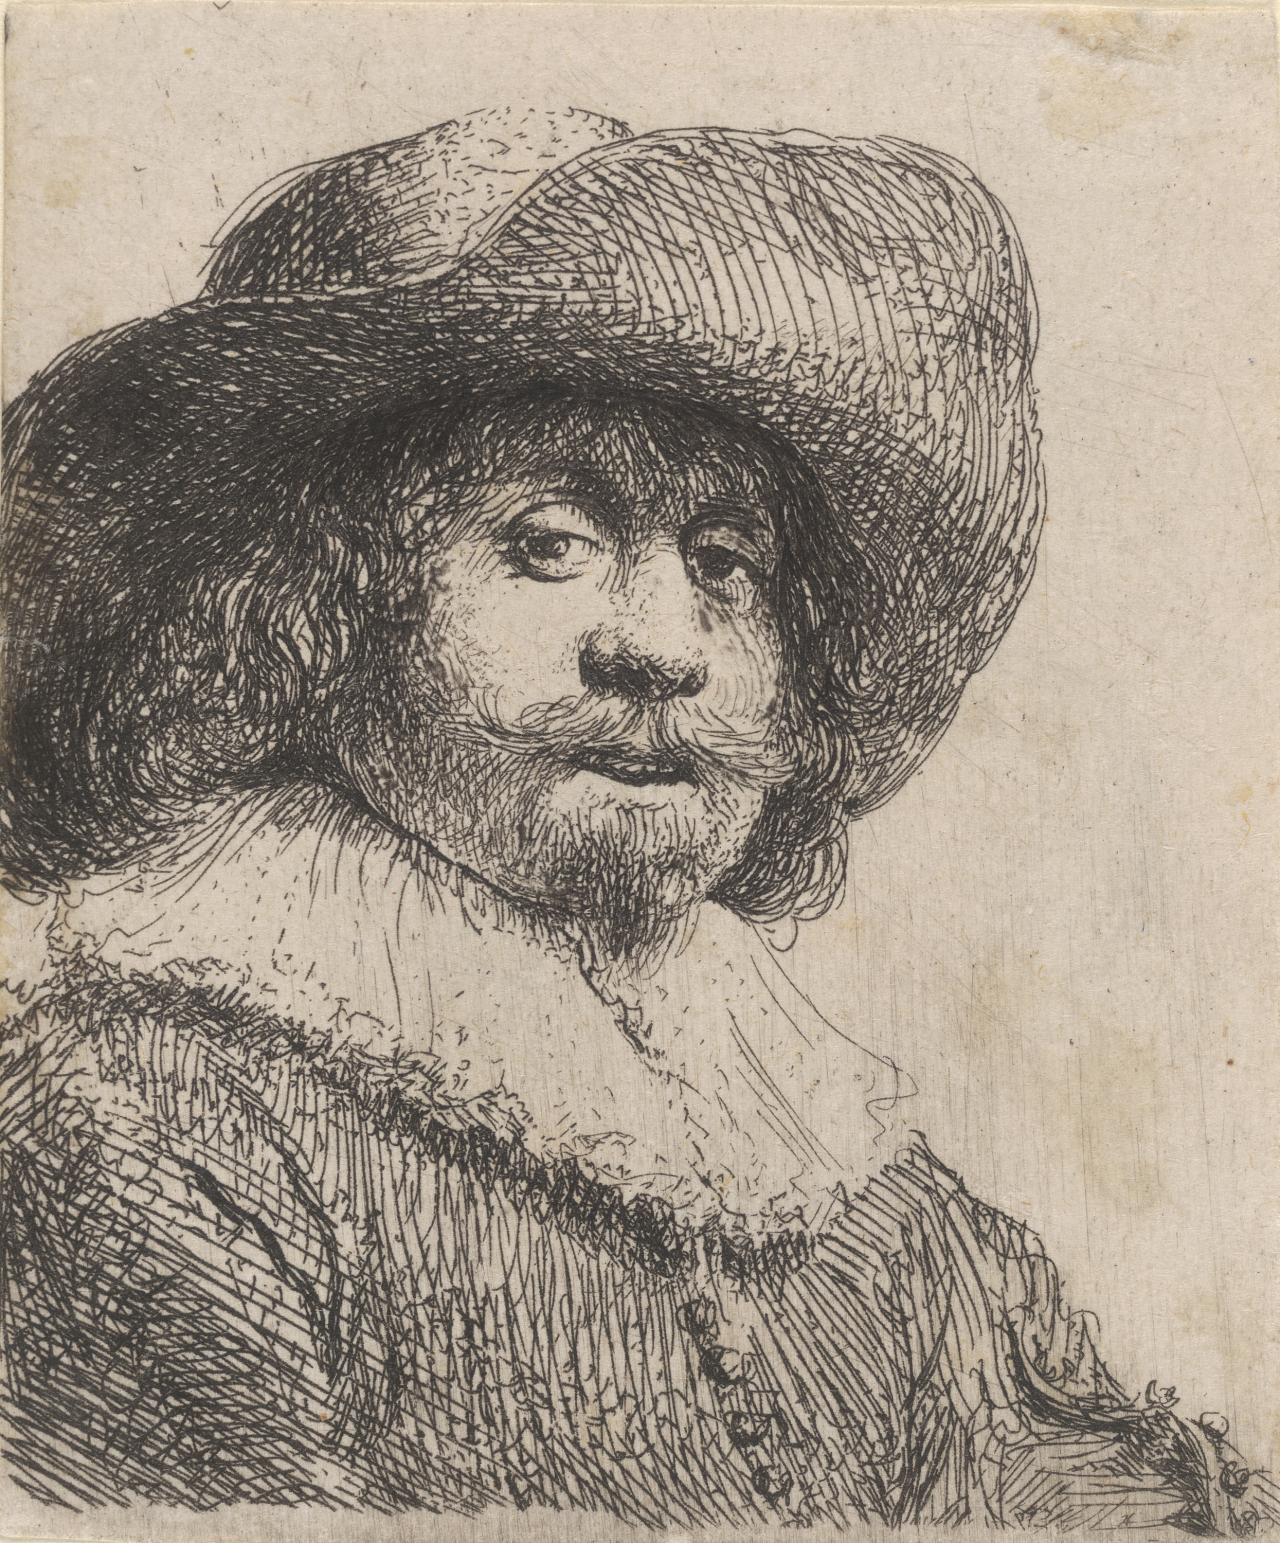 Man in a Broad-brimmed Hat and Ruff